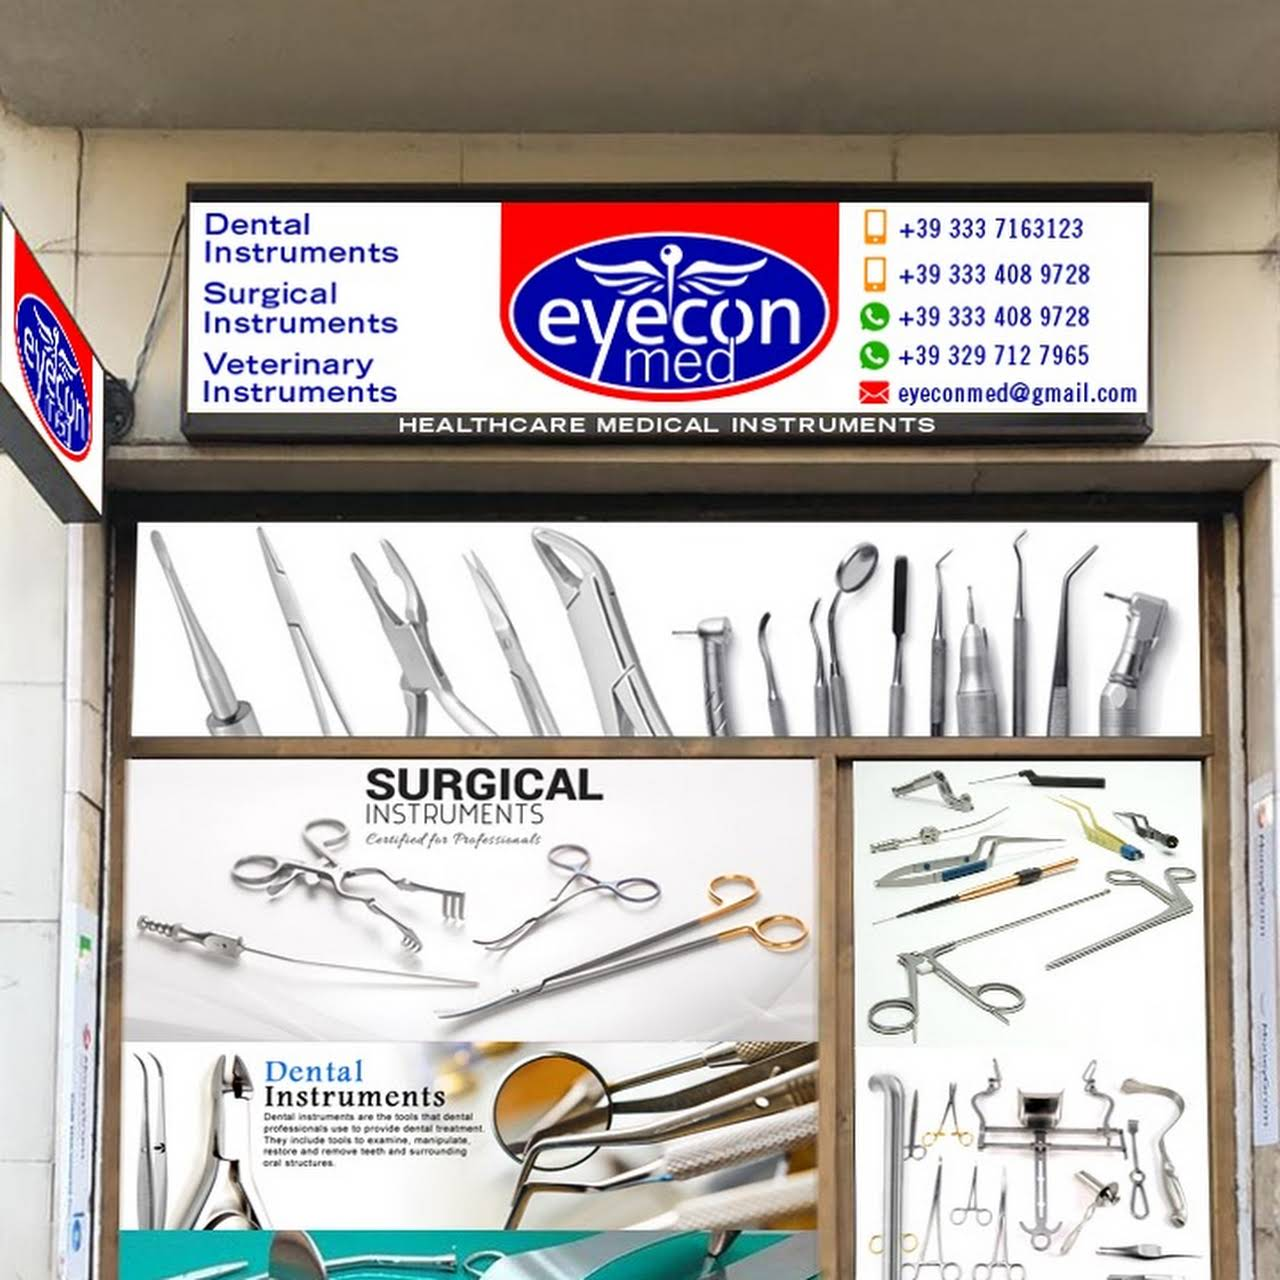 EYECONMED LTD - Dental & Surgical Instruments Manufacturer